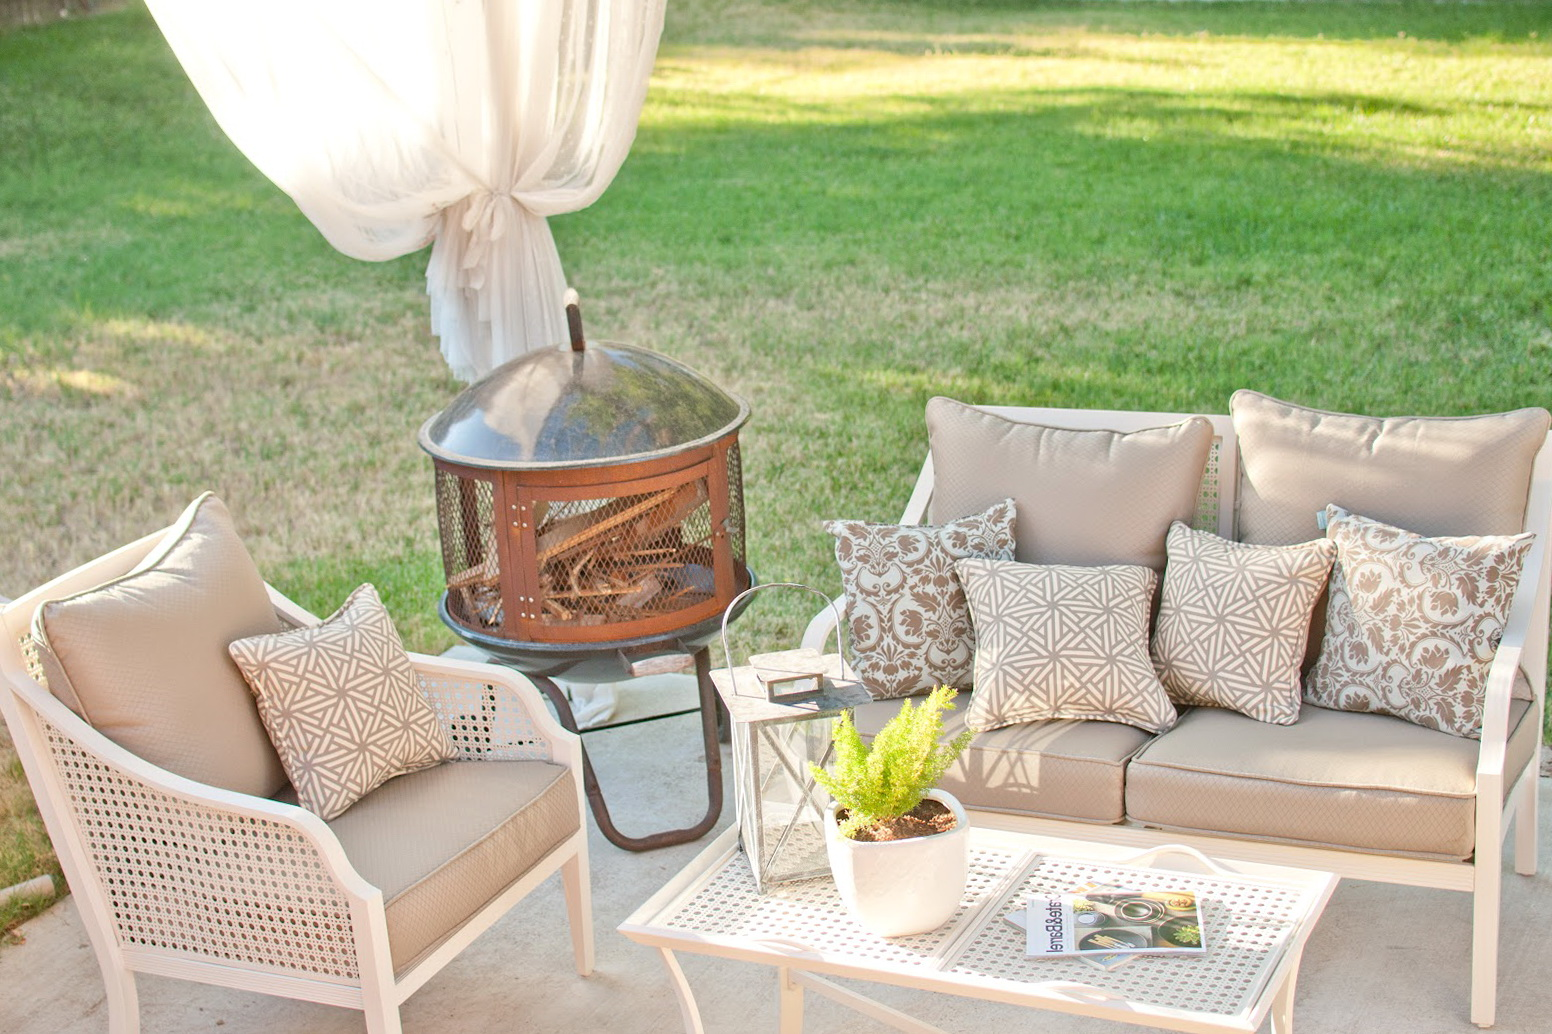 Home Depot Cushions For Outdoor Furniture